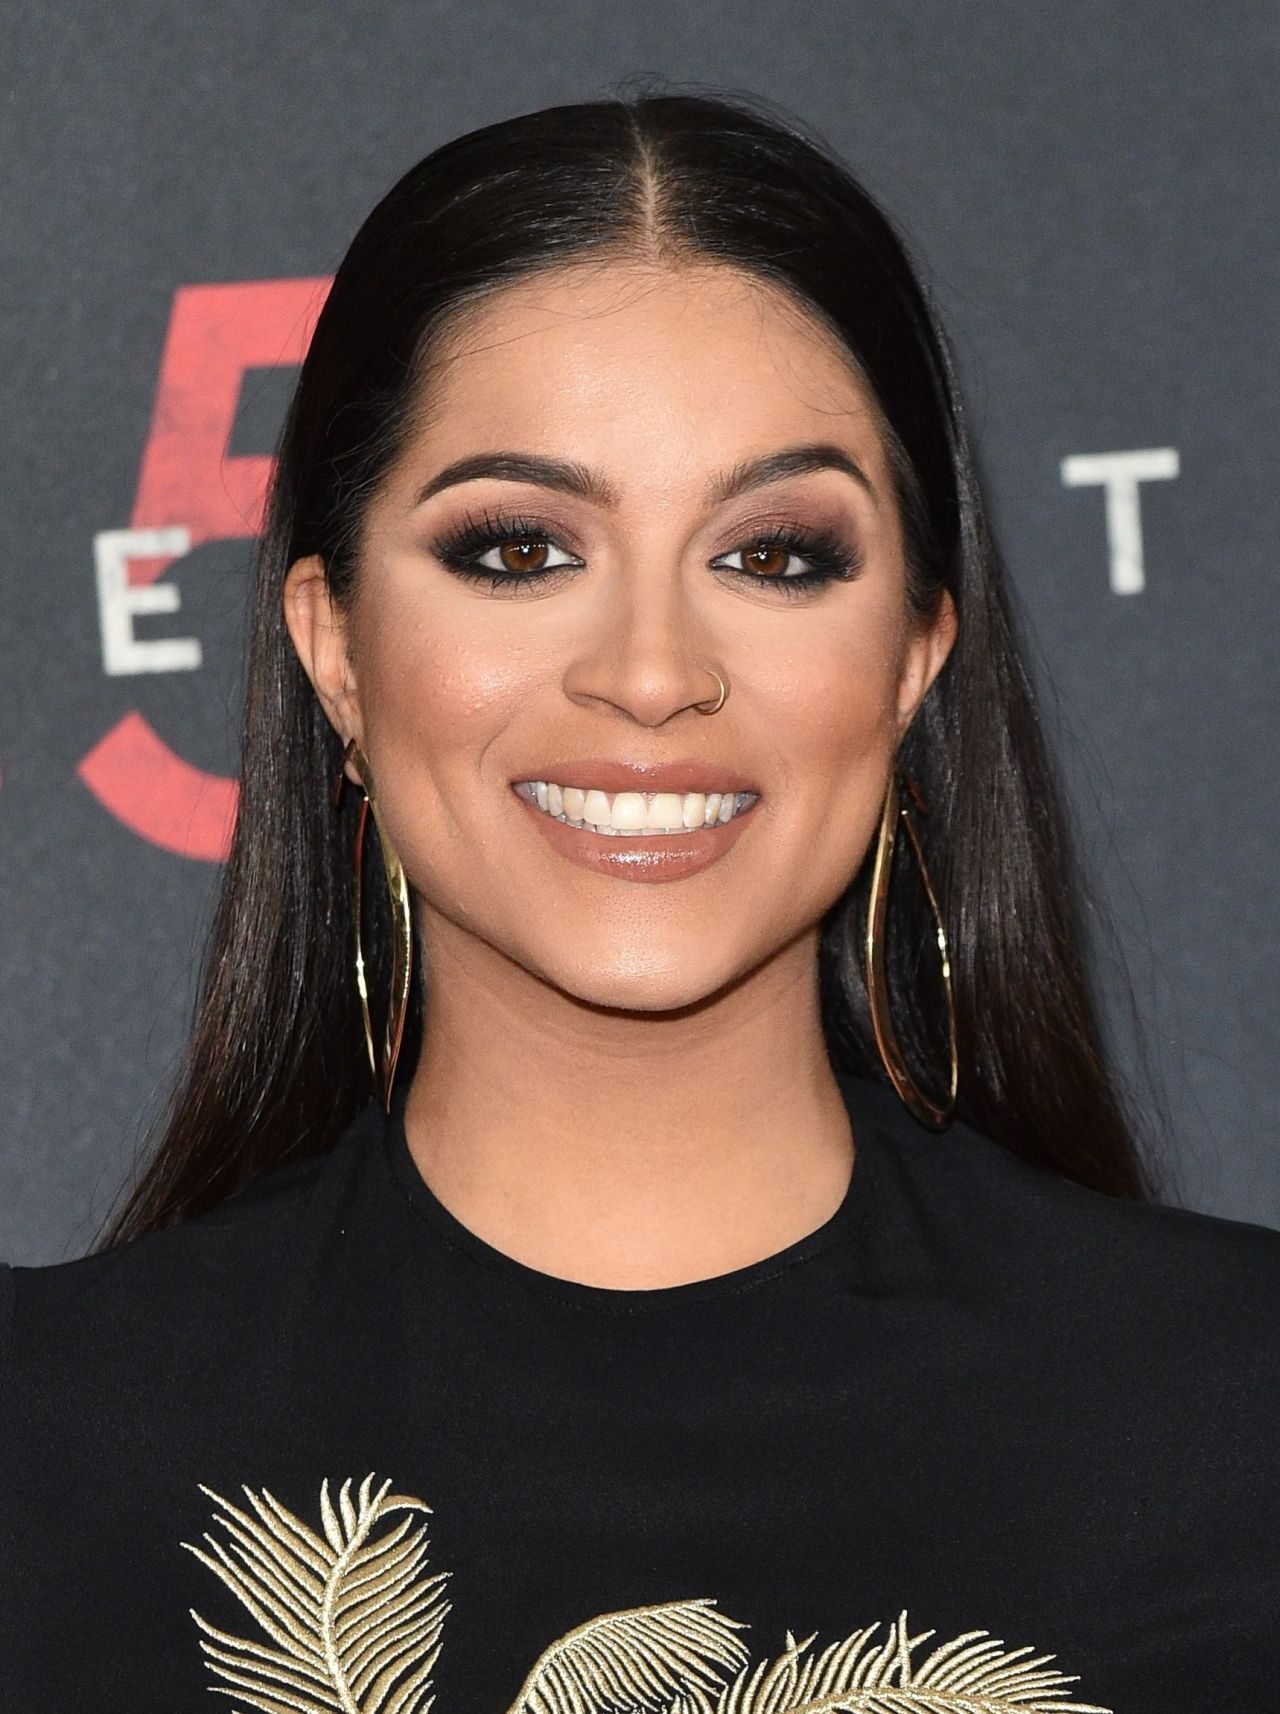 Lilly Singh Fahrenheit 451 Premiere In Nyc